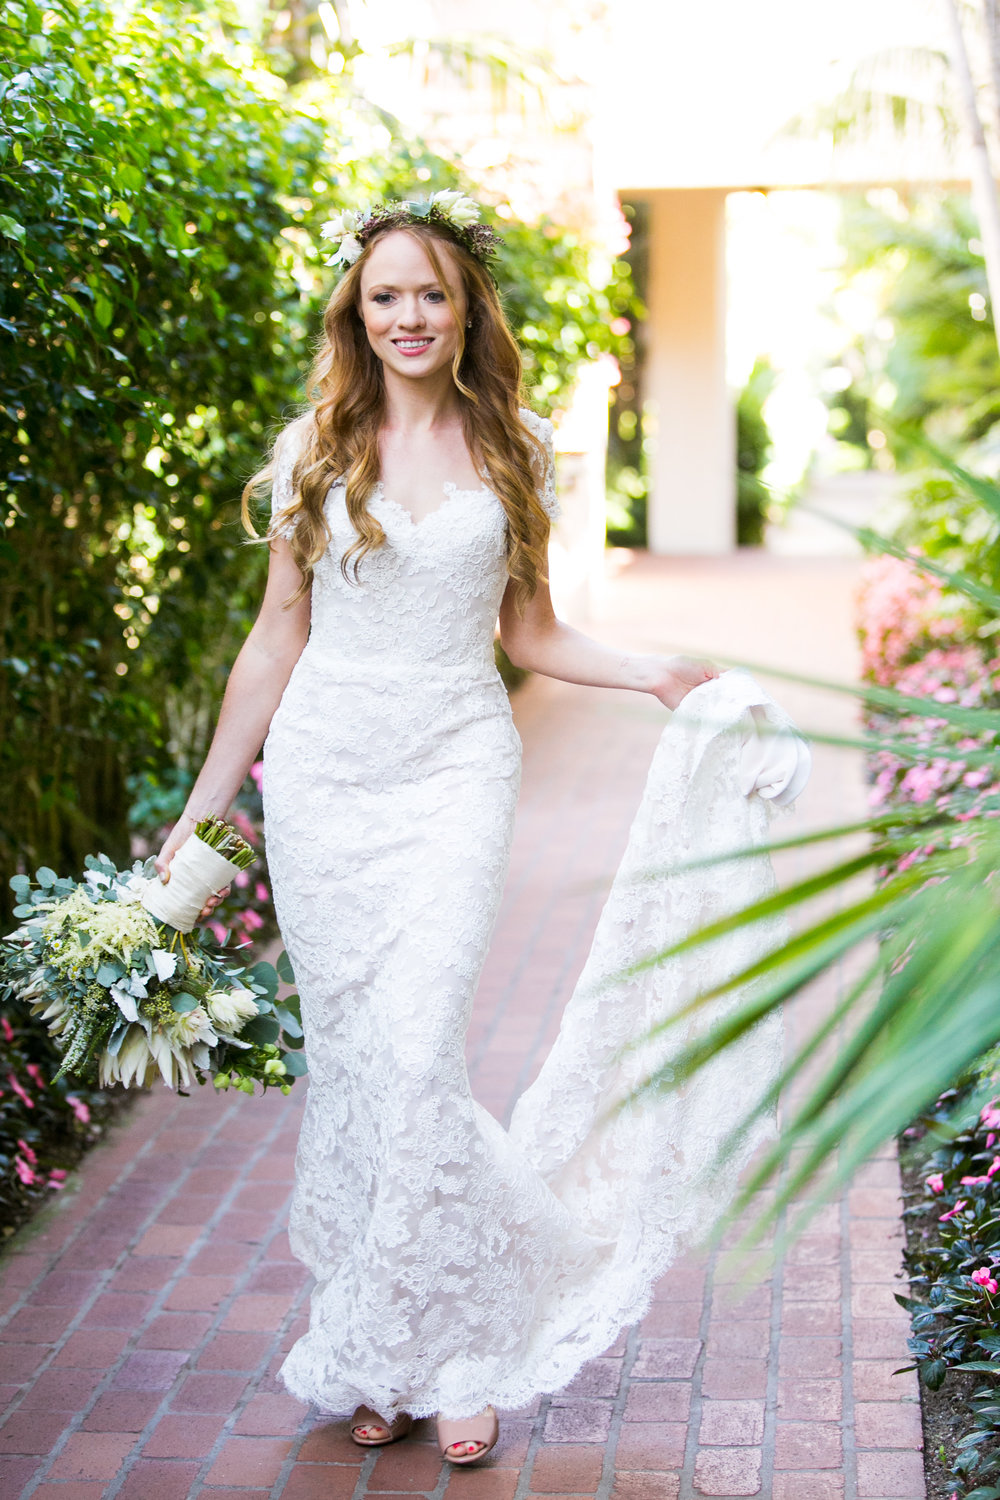 www.santabarbarawedding.com | Four Seasons Santa Barbara | Levine Fox Events | Callaway Gable Photo | Bride